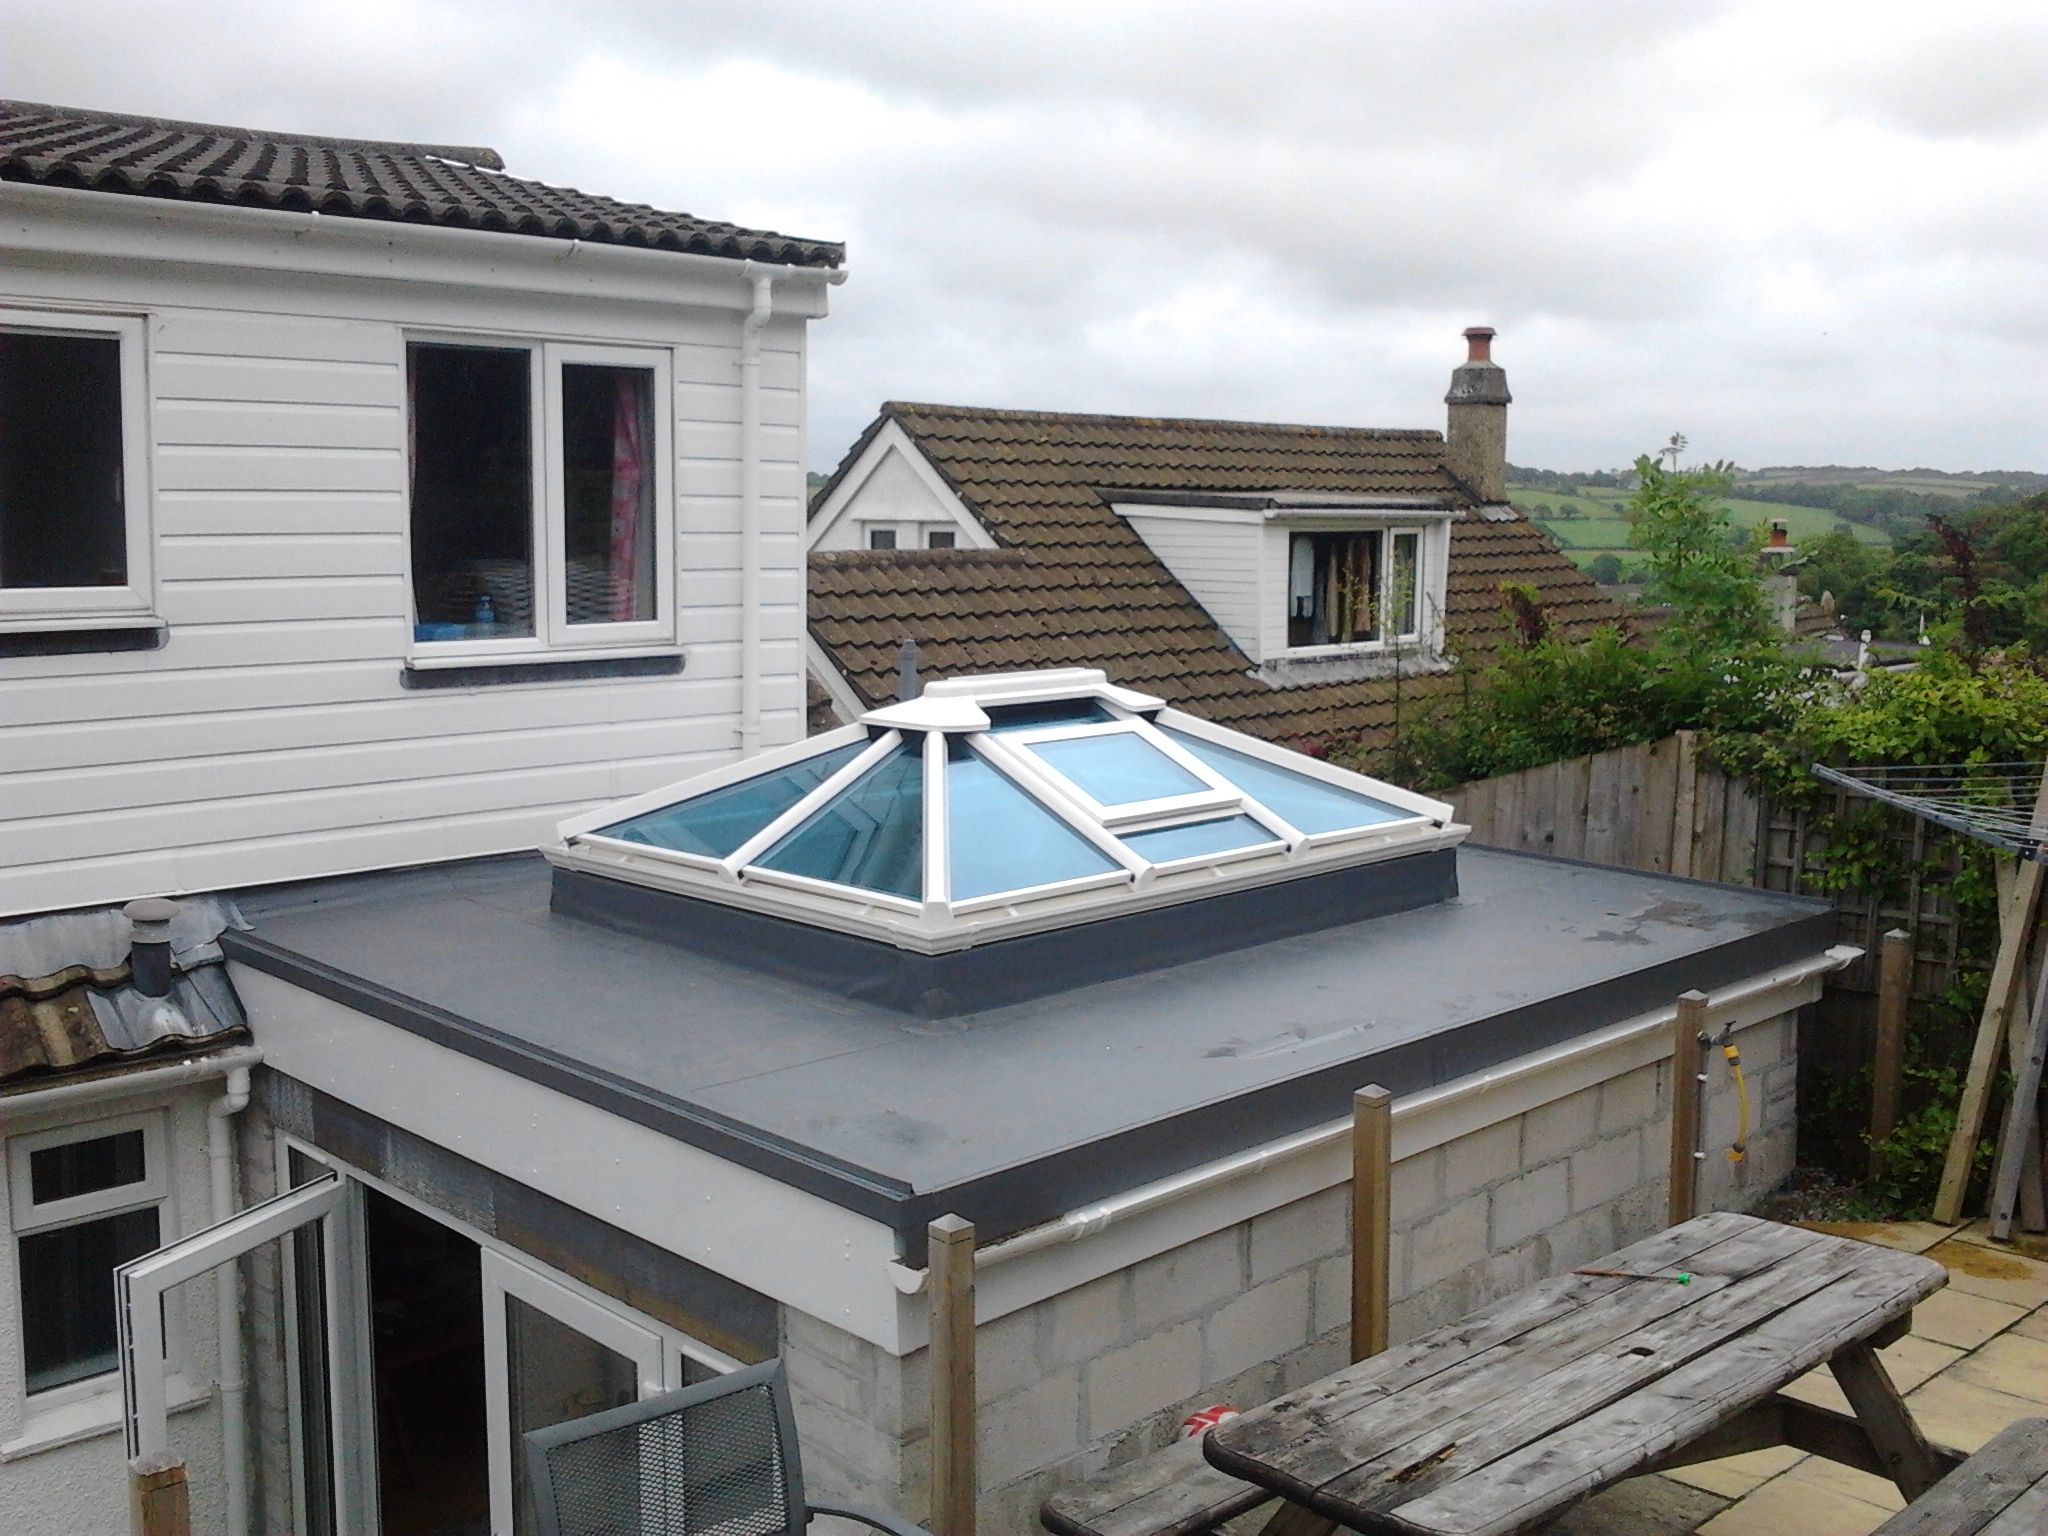 Single Ply Roofing Cornwall Pellow Flat Roofing Ltd Single Ply Roofing Flat Roof Roof Lantern